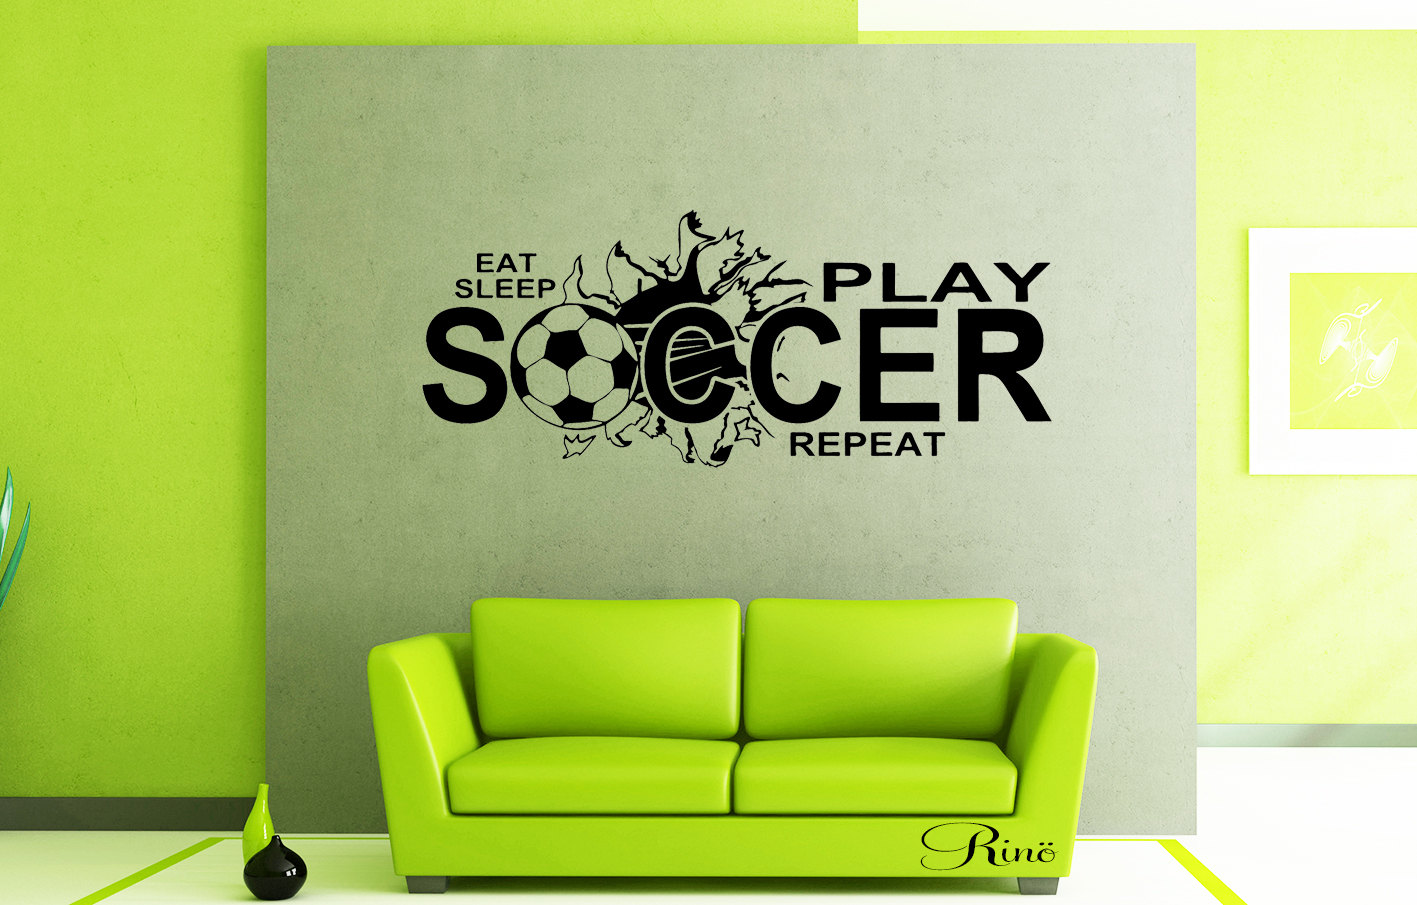 Eat Sleep Play Soccer Wall Art Vinyl Decal Soccer Decals